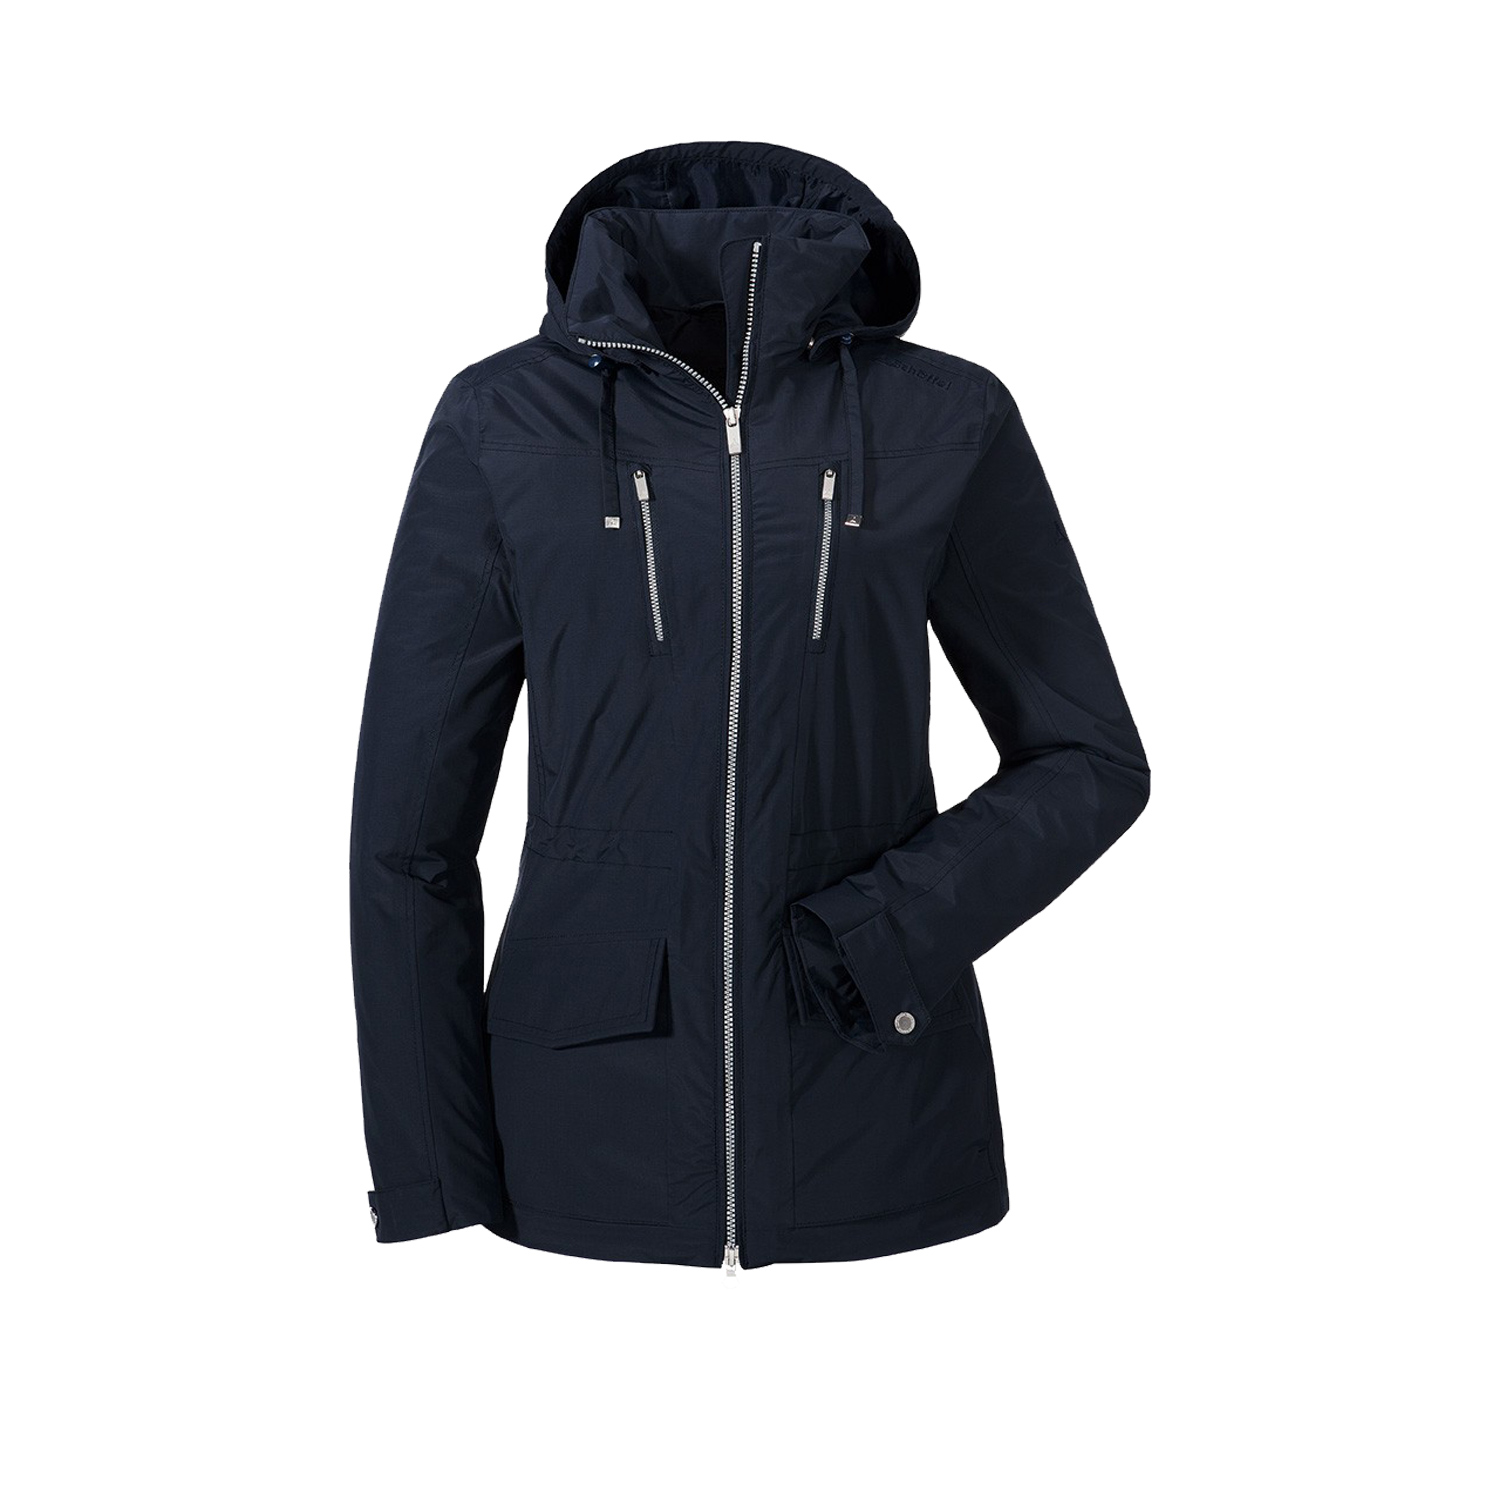 Schöffel Jacket Silver Star Damen Outdoorjacke